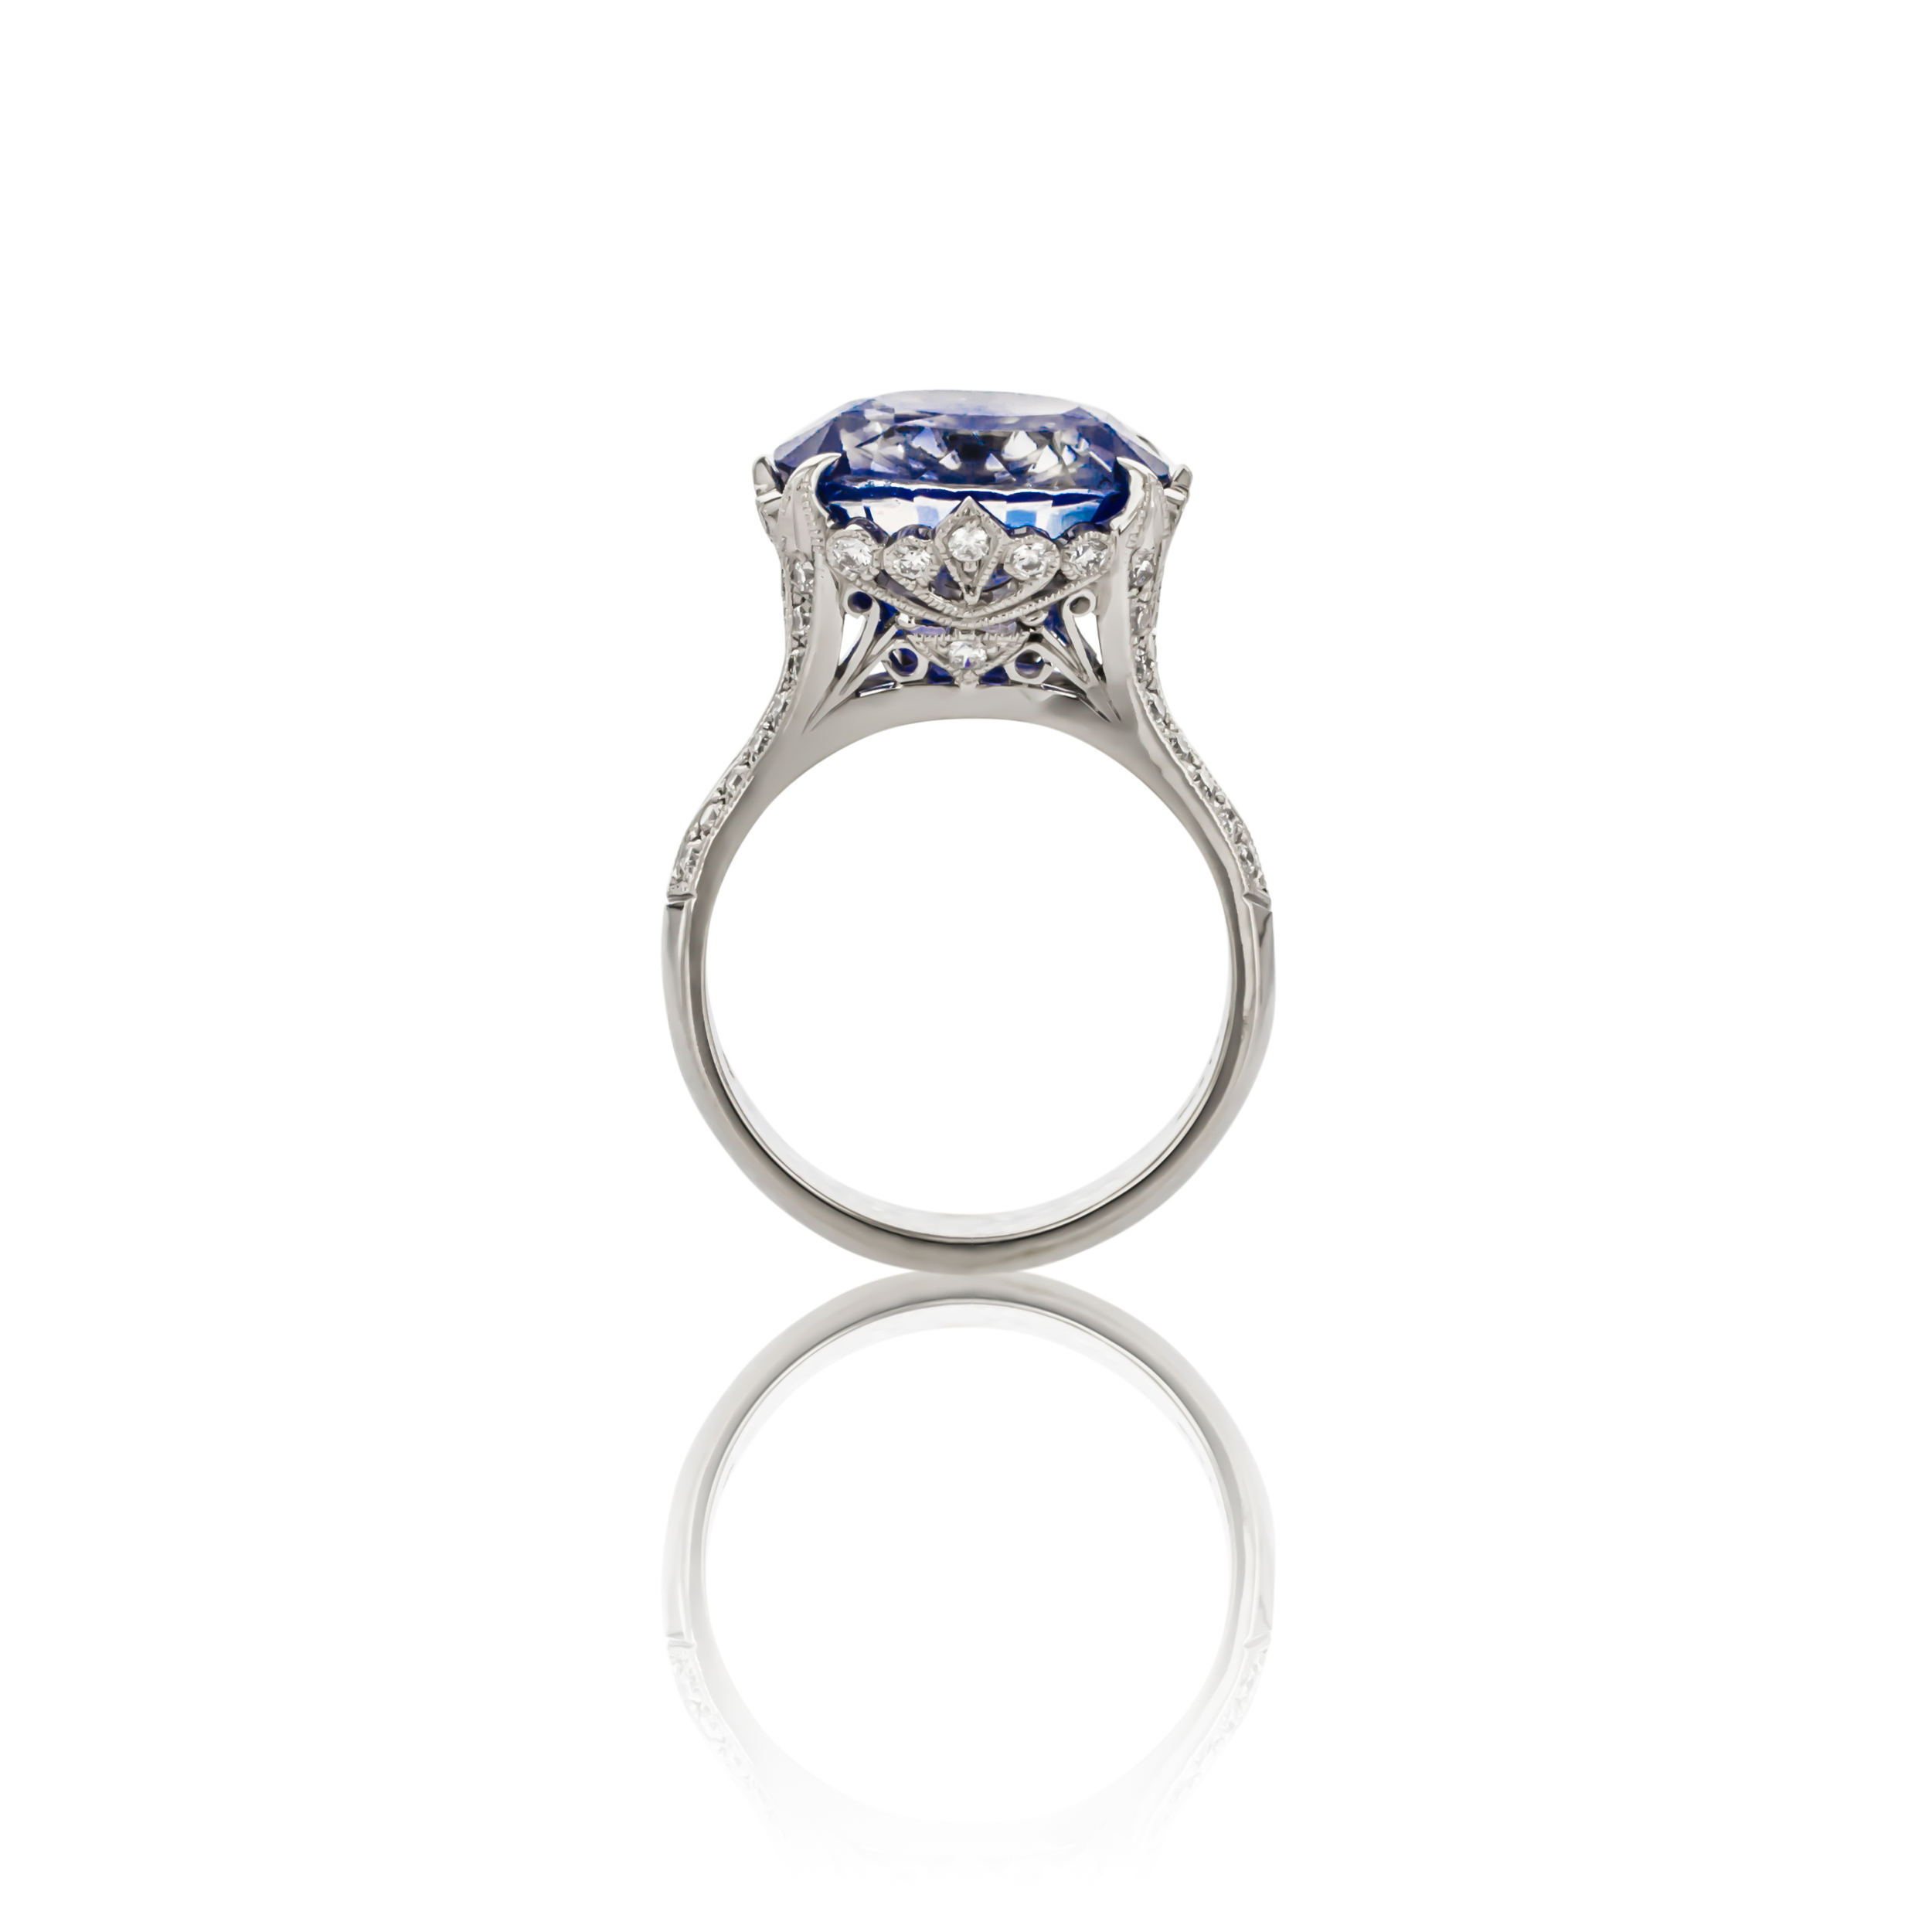 CUSTOM SAPPHIRE AND DIAMOND RING